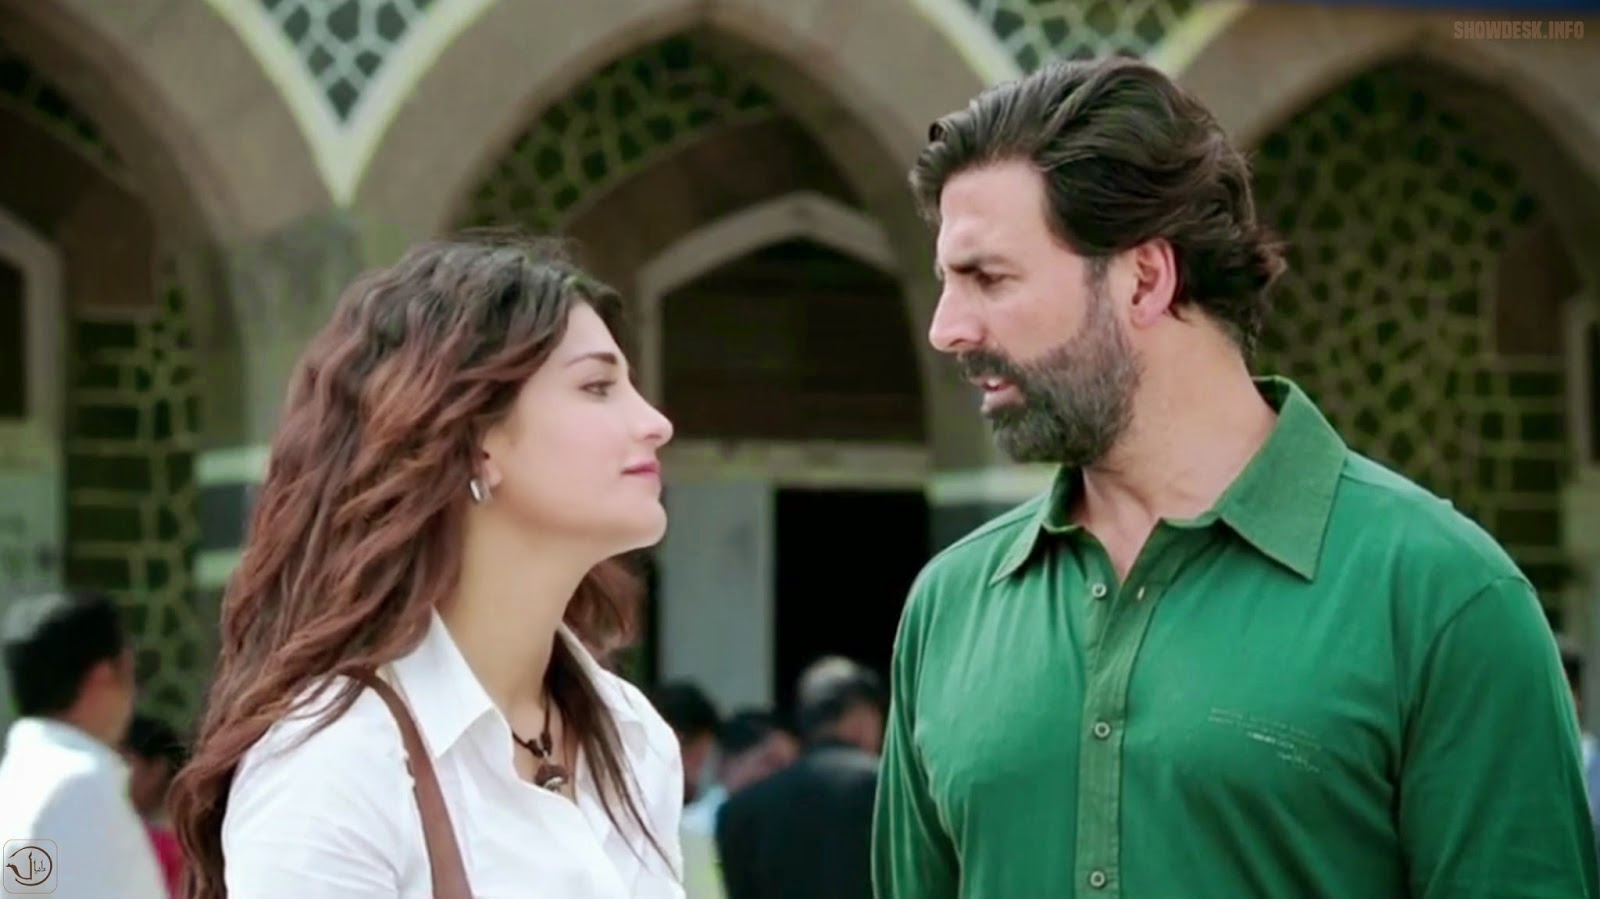 Shruti Haasan with Akshay Kumar in Gabbar is Back (2015), post surgery look, Directed by Krish